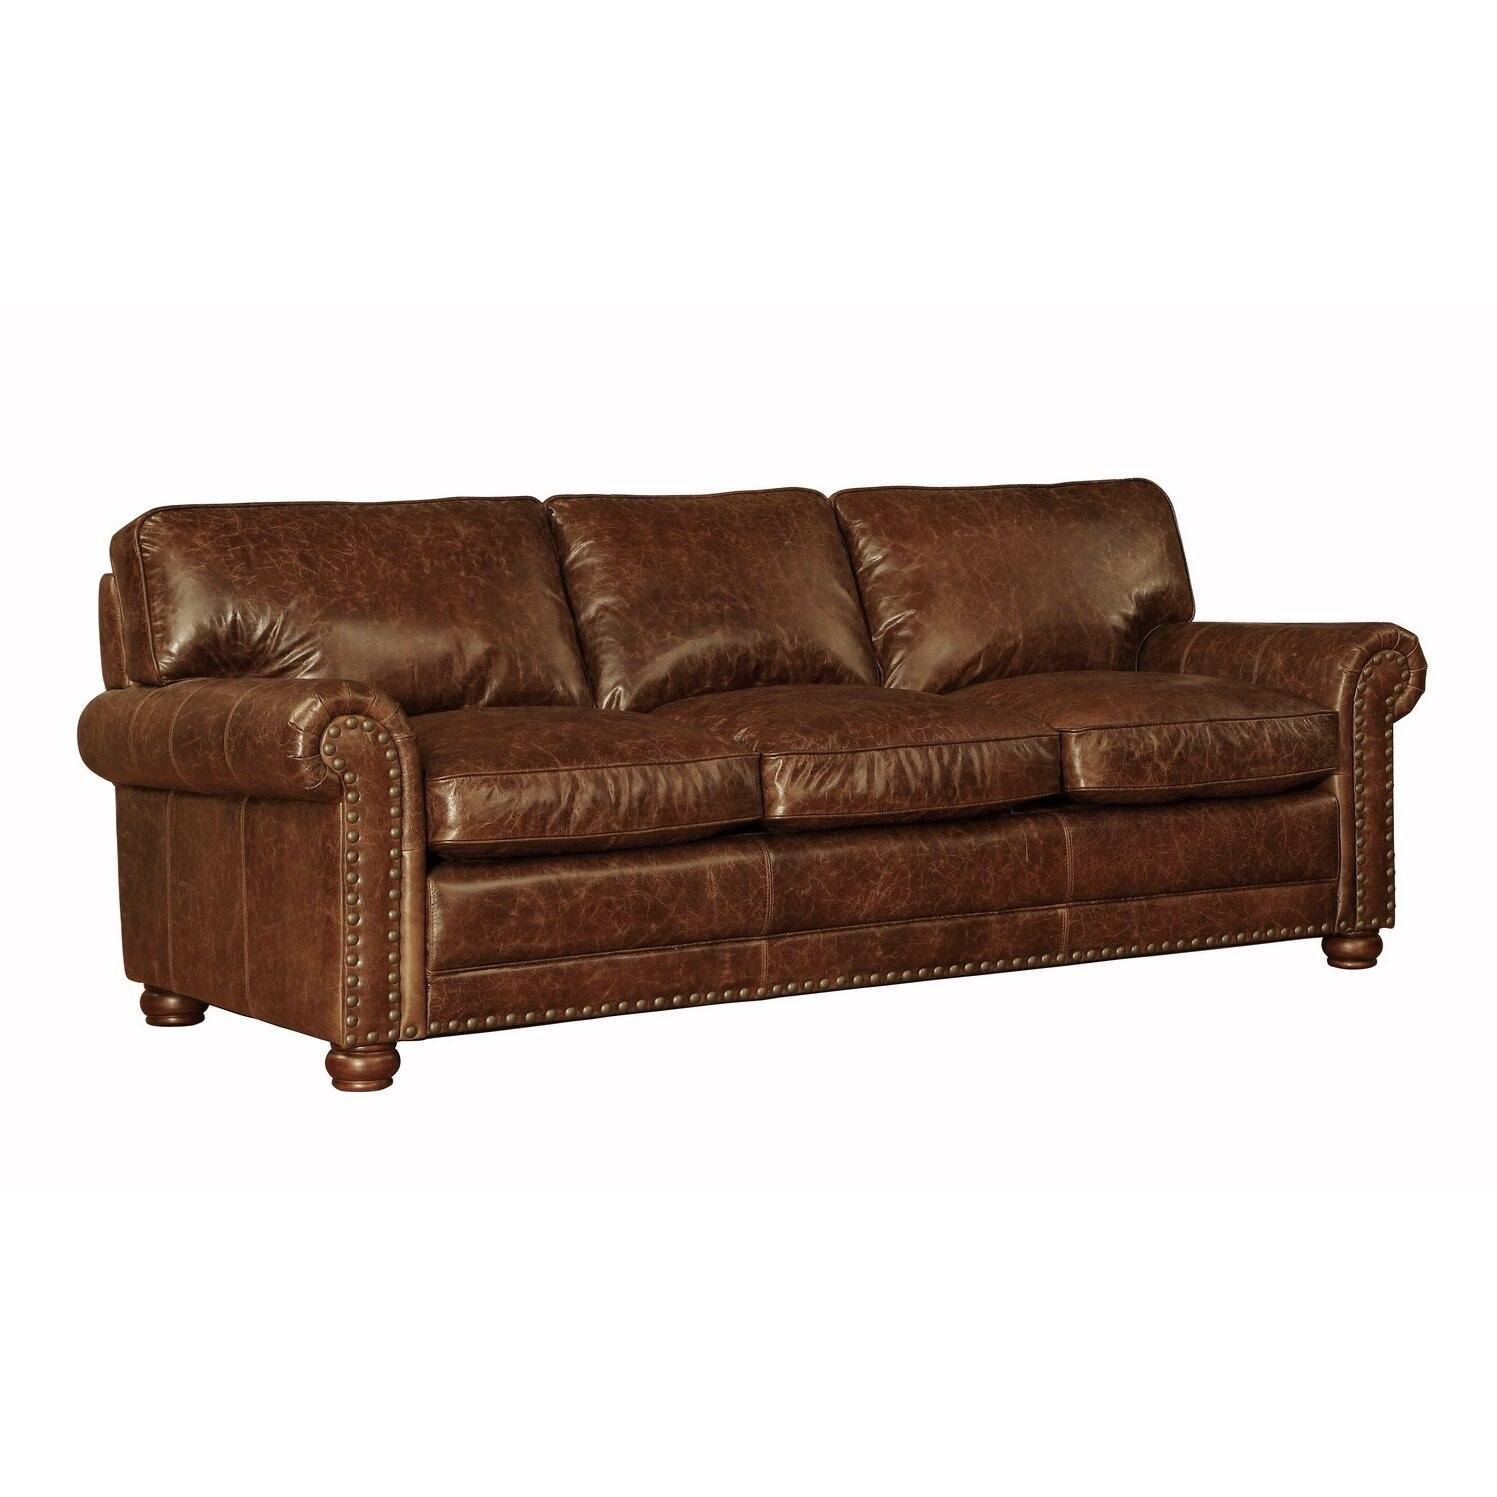 Reviews For Leather Sofas: Lazzaro Leather Genesis Leather Sofa & Reviews